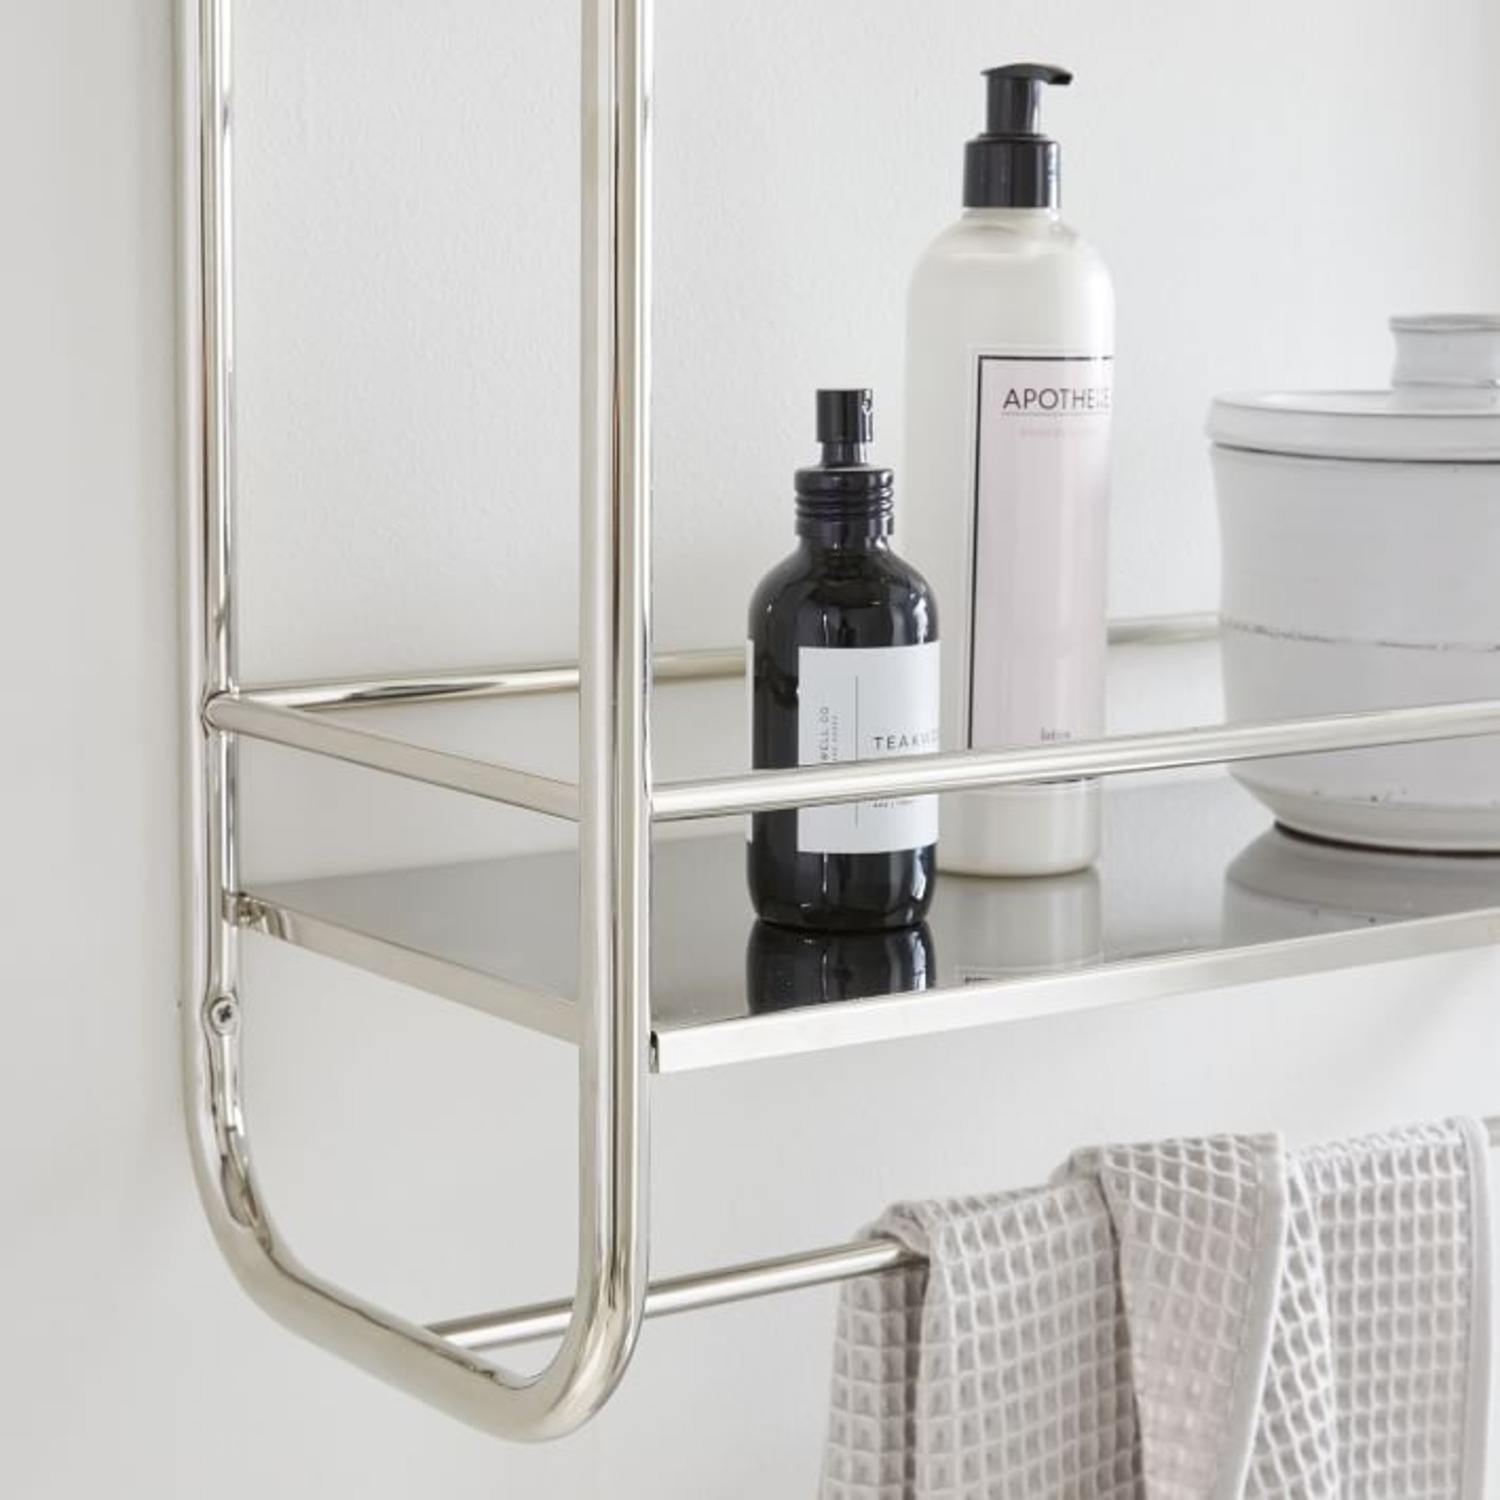 West Elm Deco Curve Metal Wall Shelf - image-1